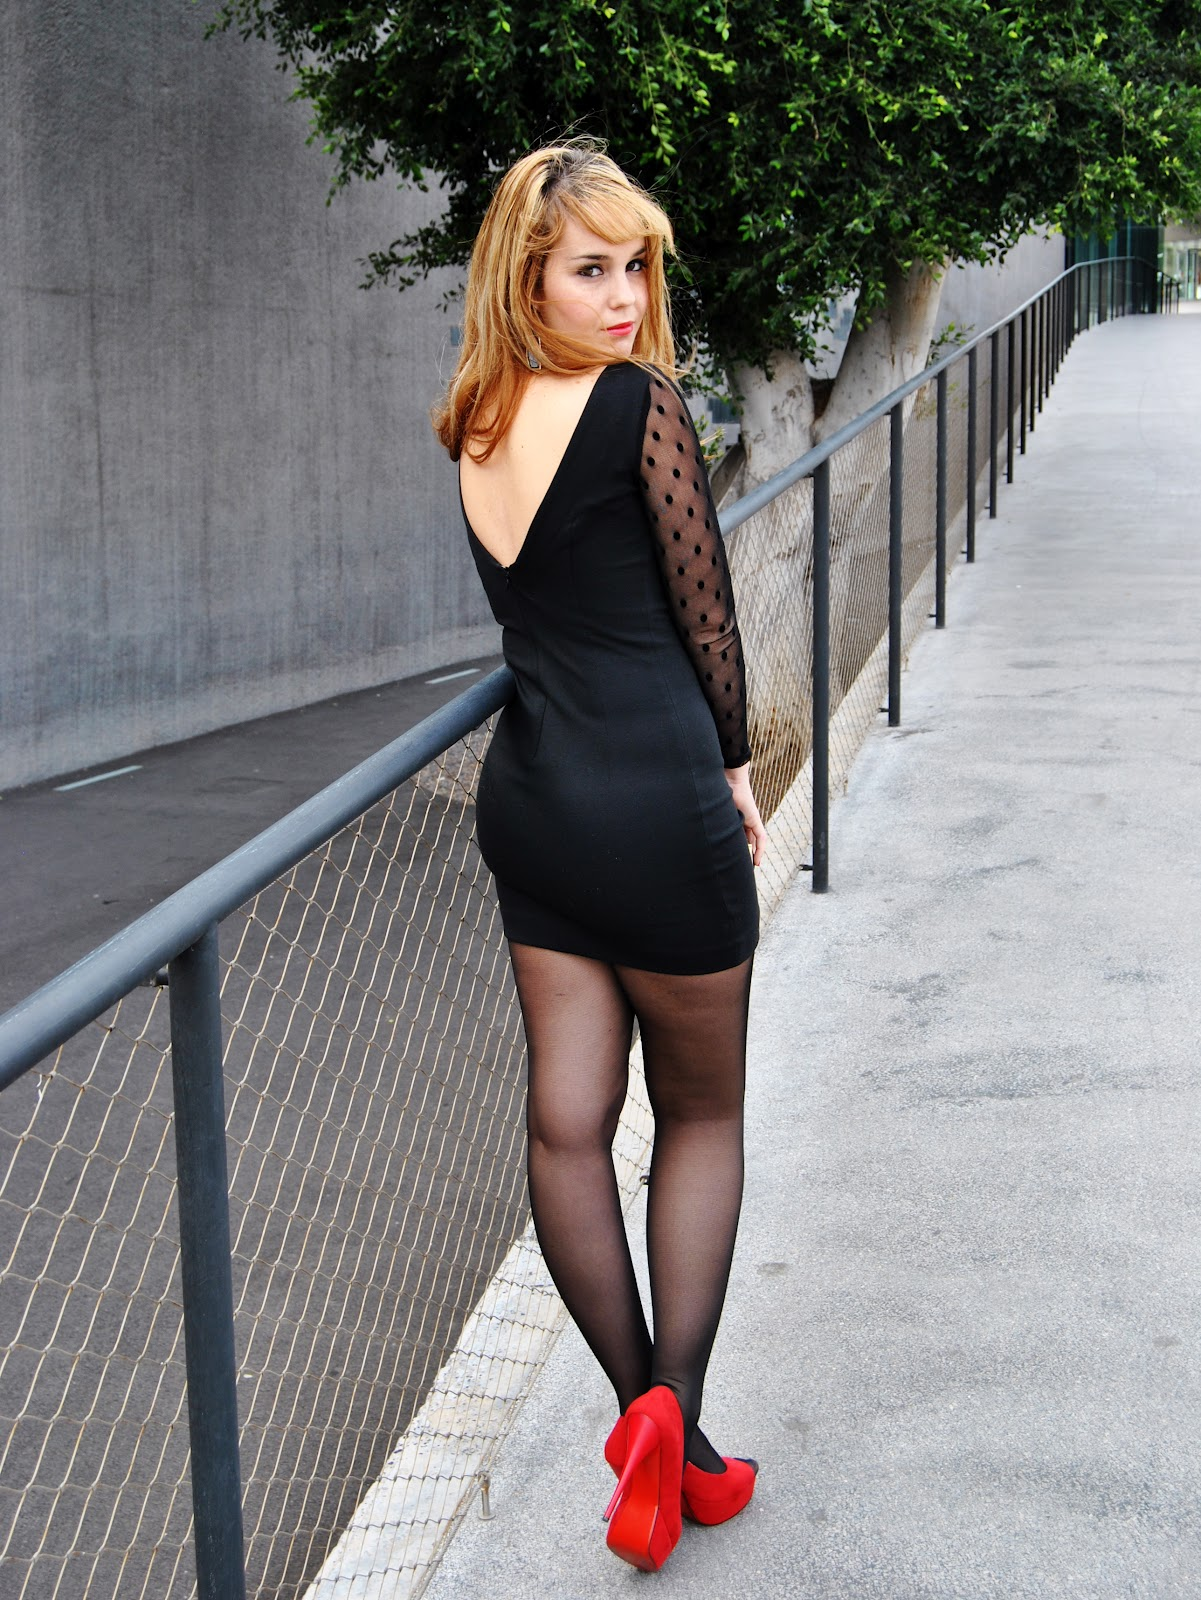 nery hdez, dots, red shoes, LBD. Little black dress